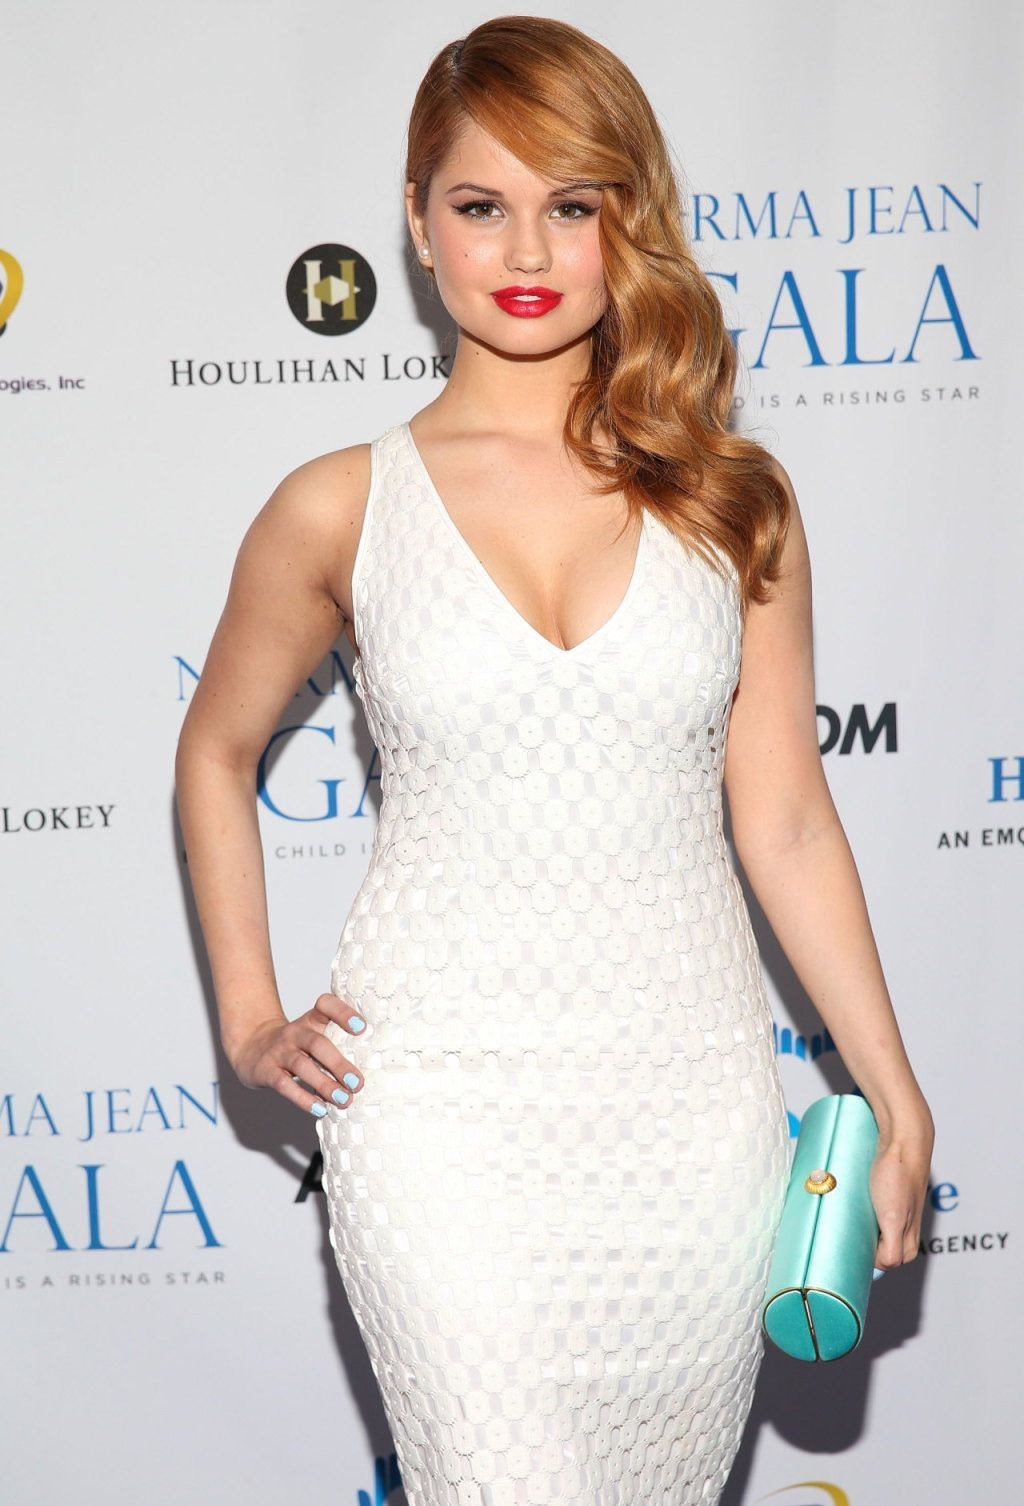 Debby Ryan #cleavage in a white dress at the Norma Jean gala ...